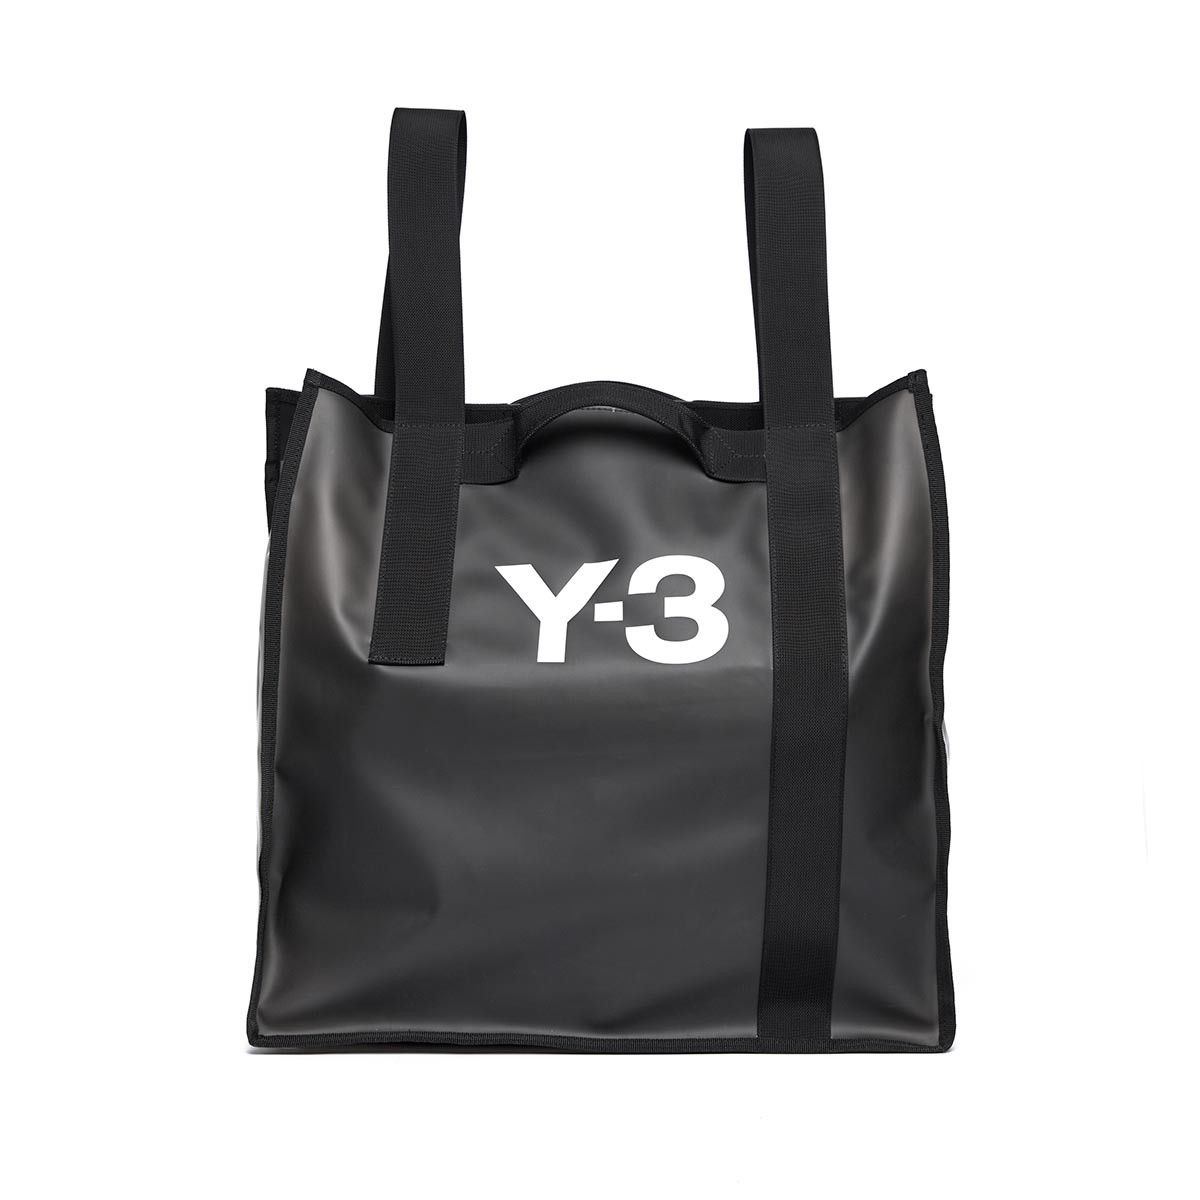 Beach bag from the S S2017 Y-3 by Yohji Yamamoto collection in black  Launched in 2002 4cedff2d89b38